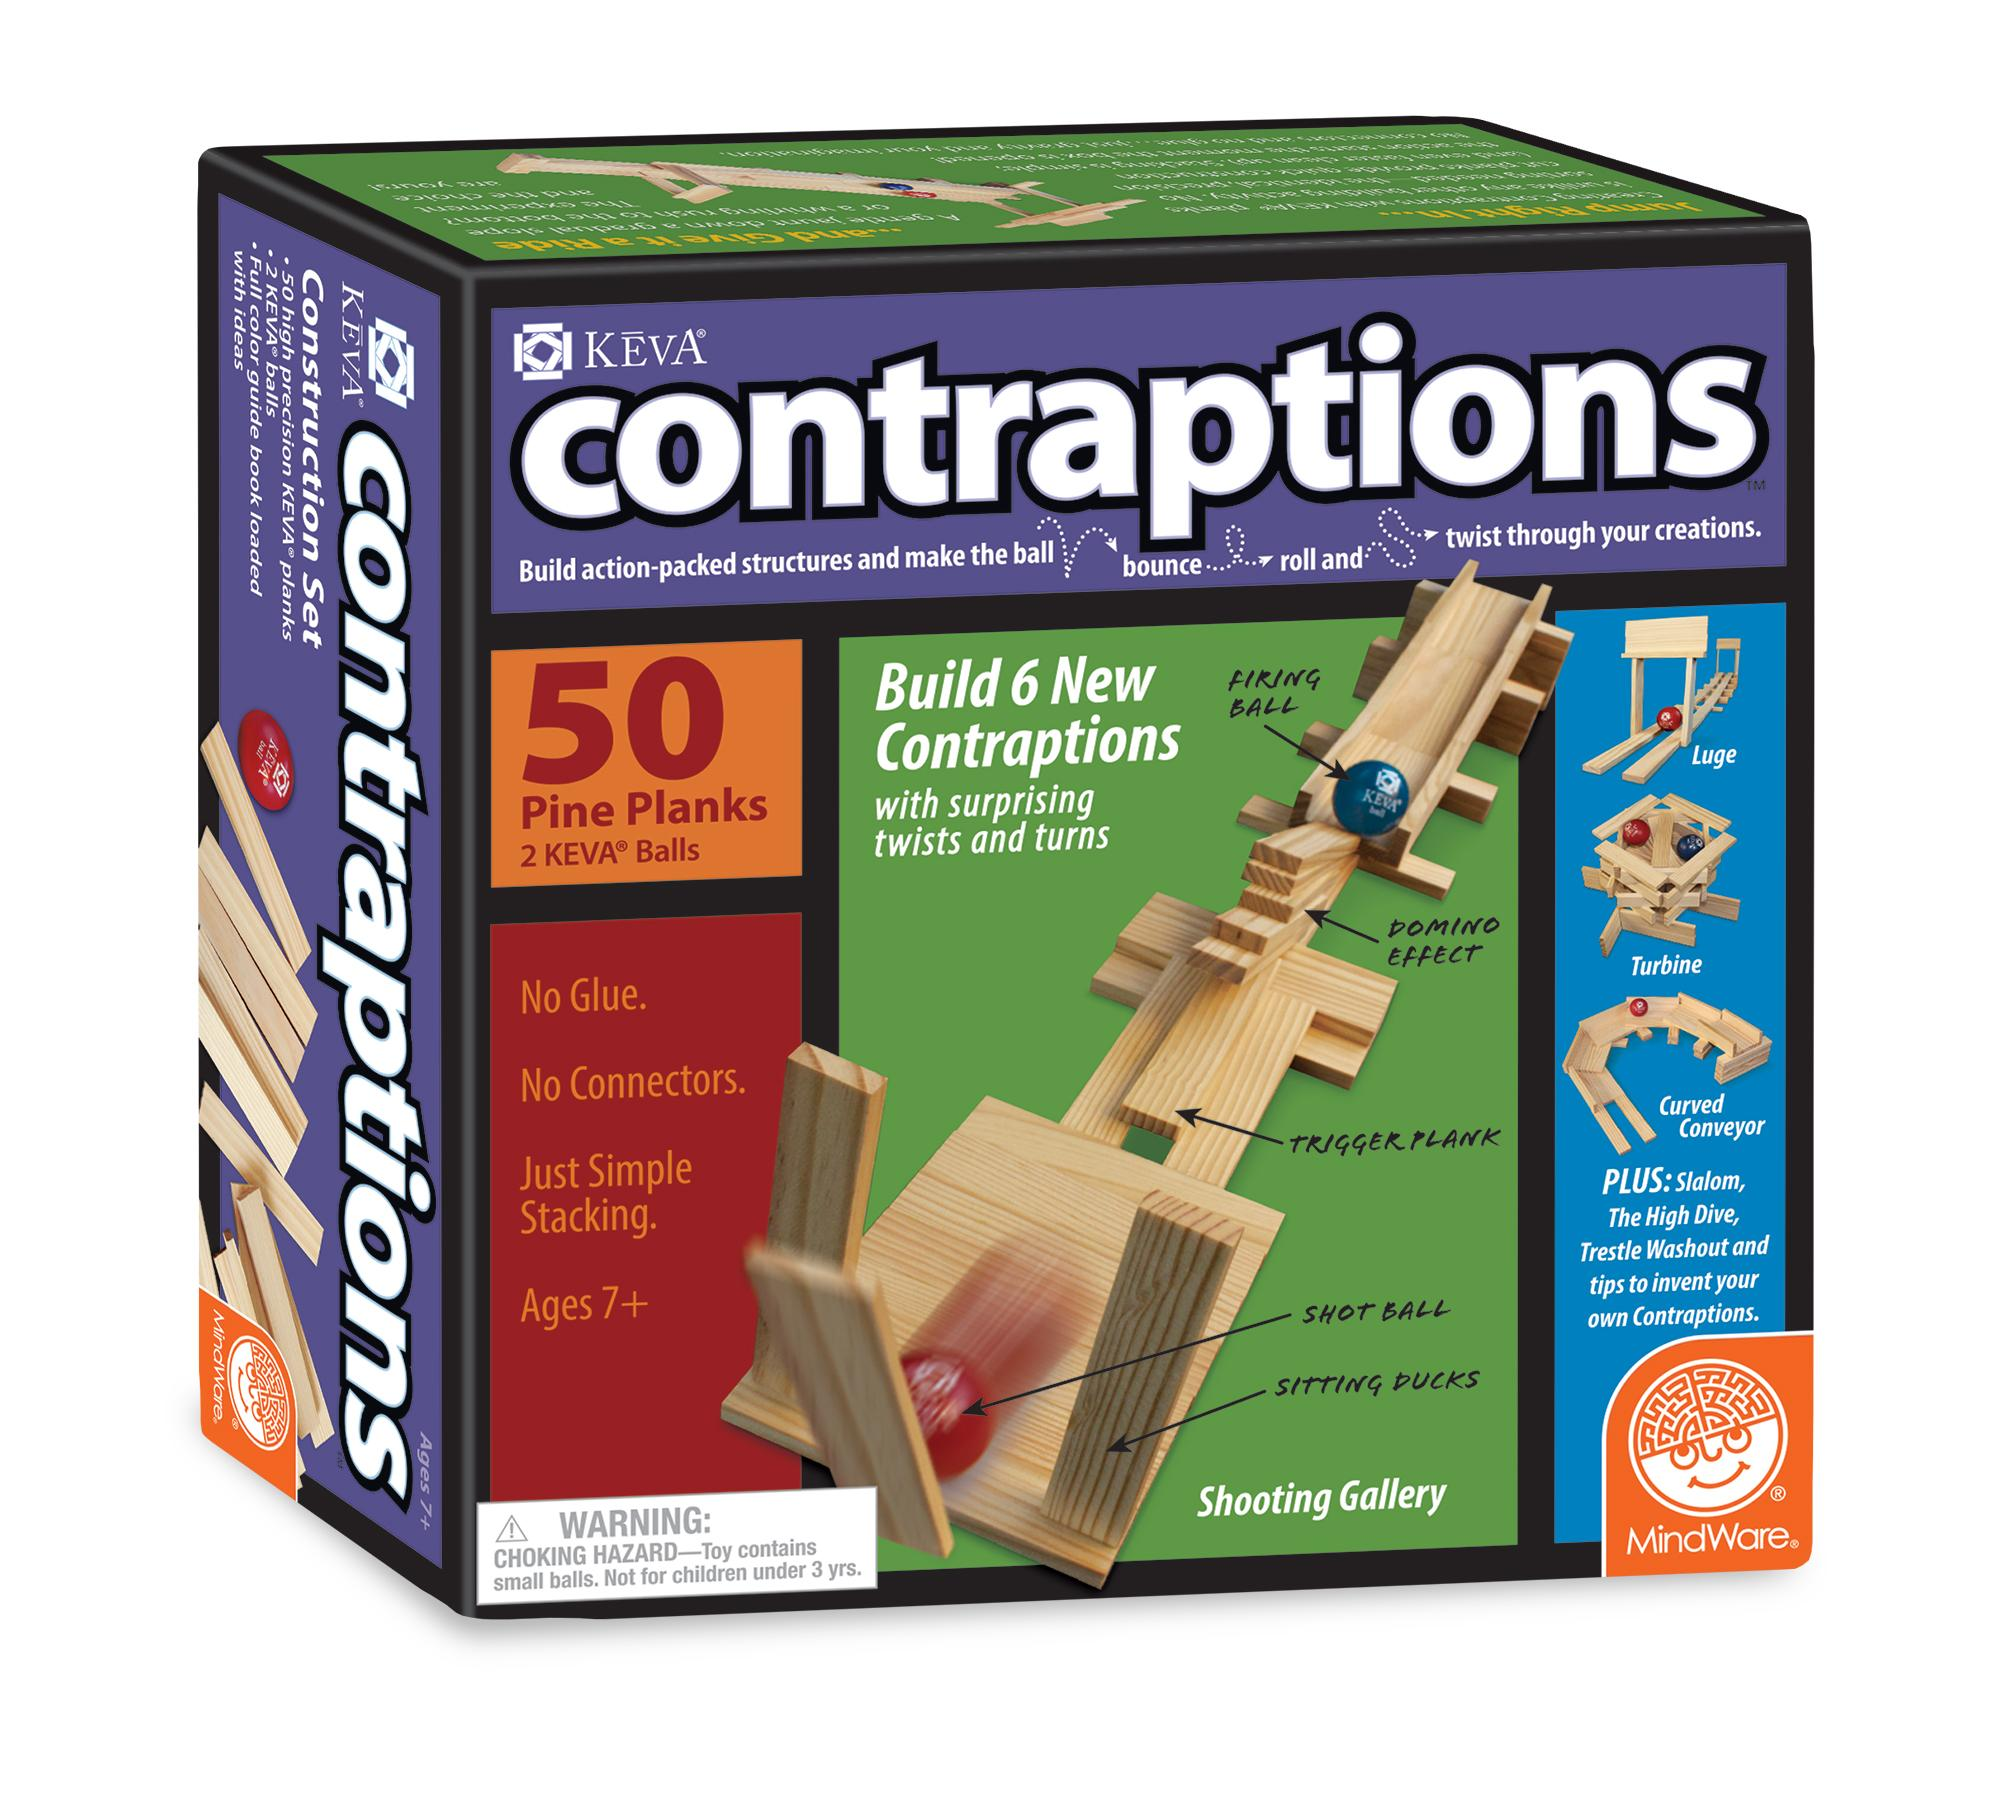 Keva Contraptions 50 Planks (Other)